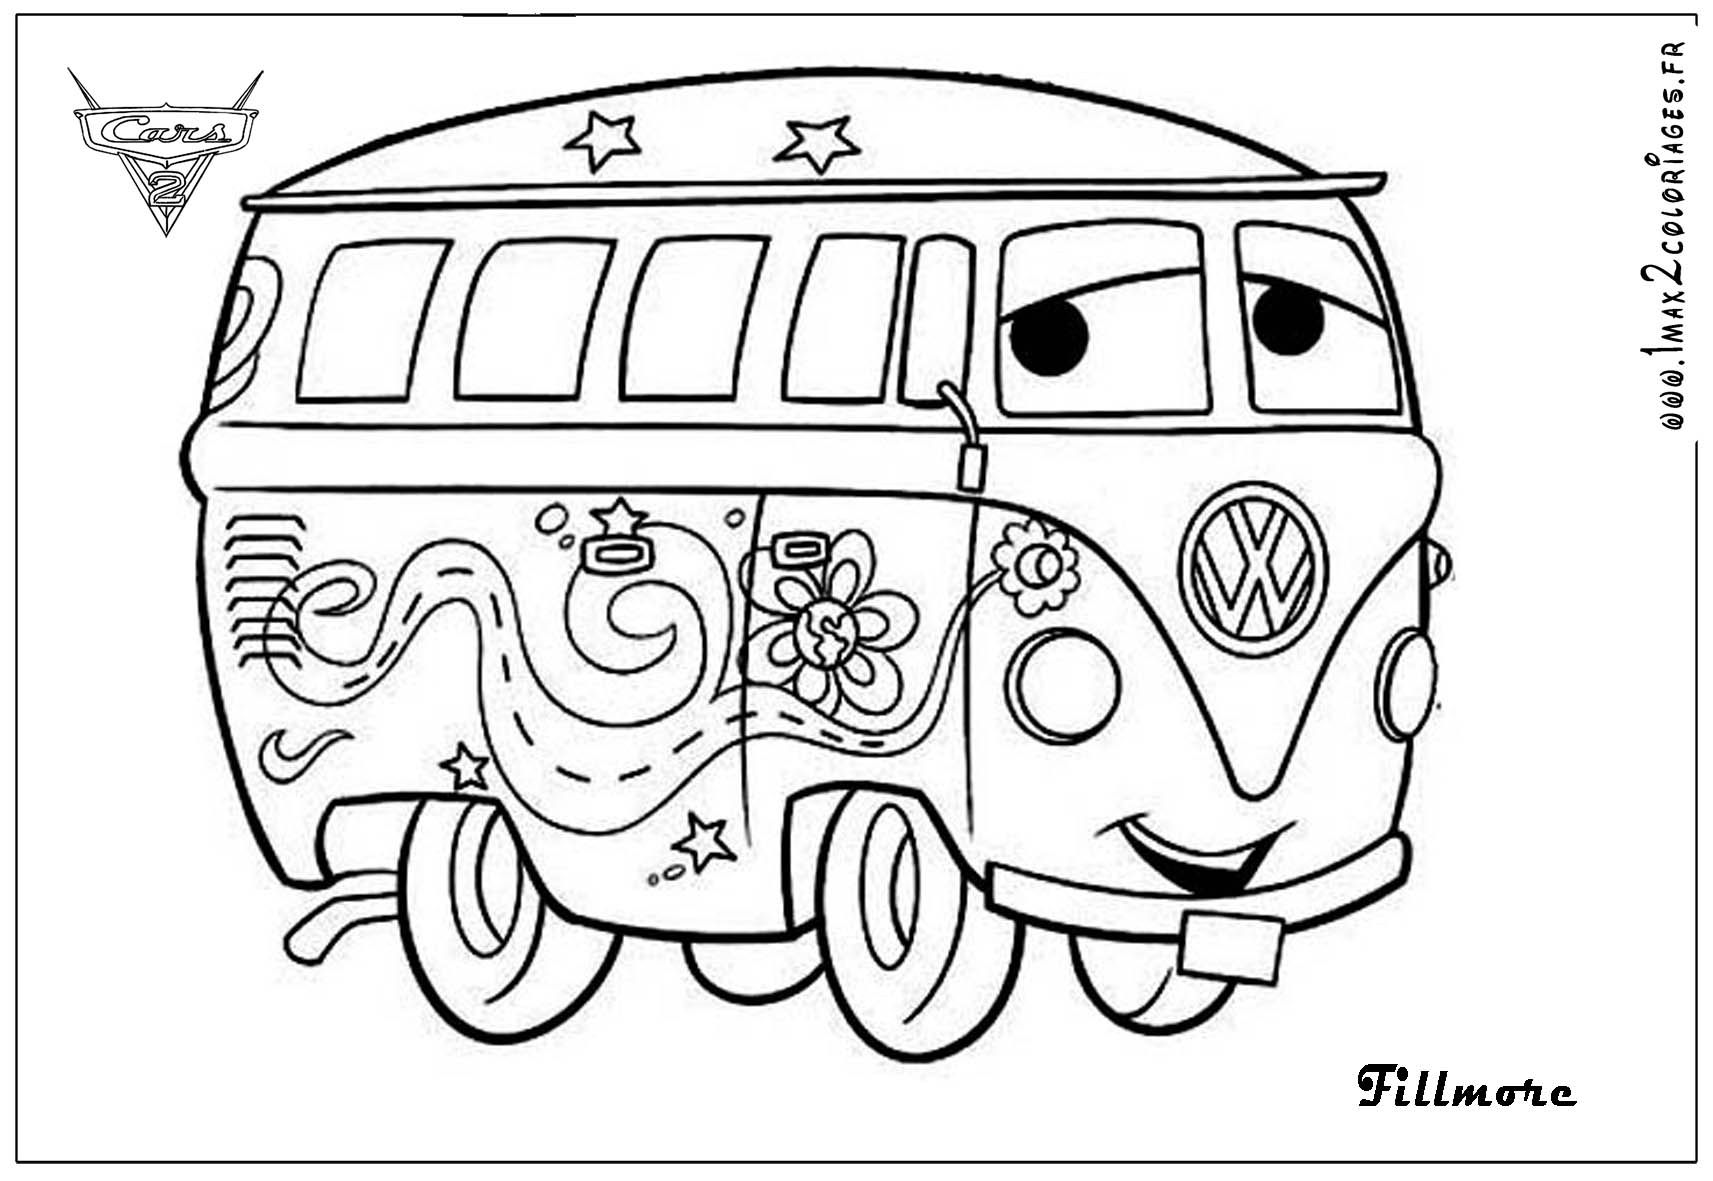 1713x1181 Cars Printable Coloring Pages Coloriages Fillmore Big